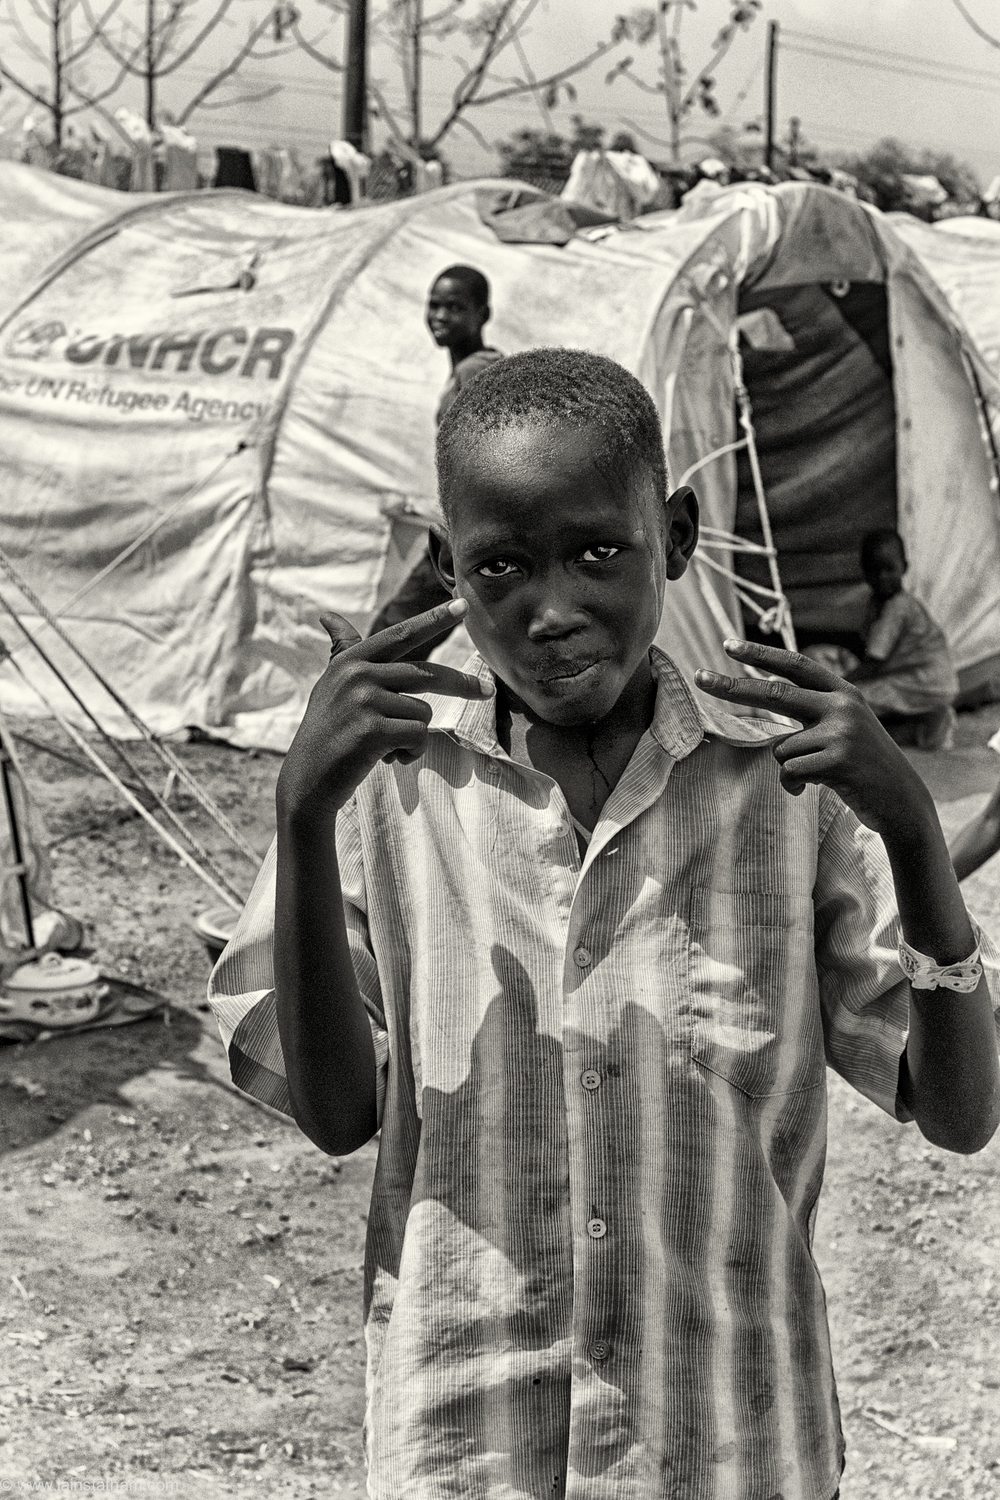 ug - south sudan refugees - dziapi - bw-19.jpg